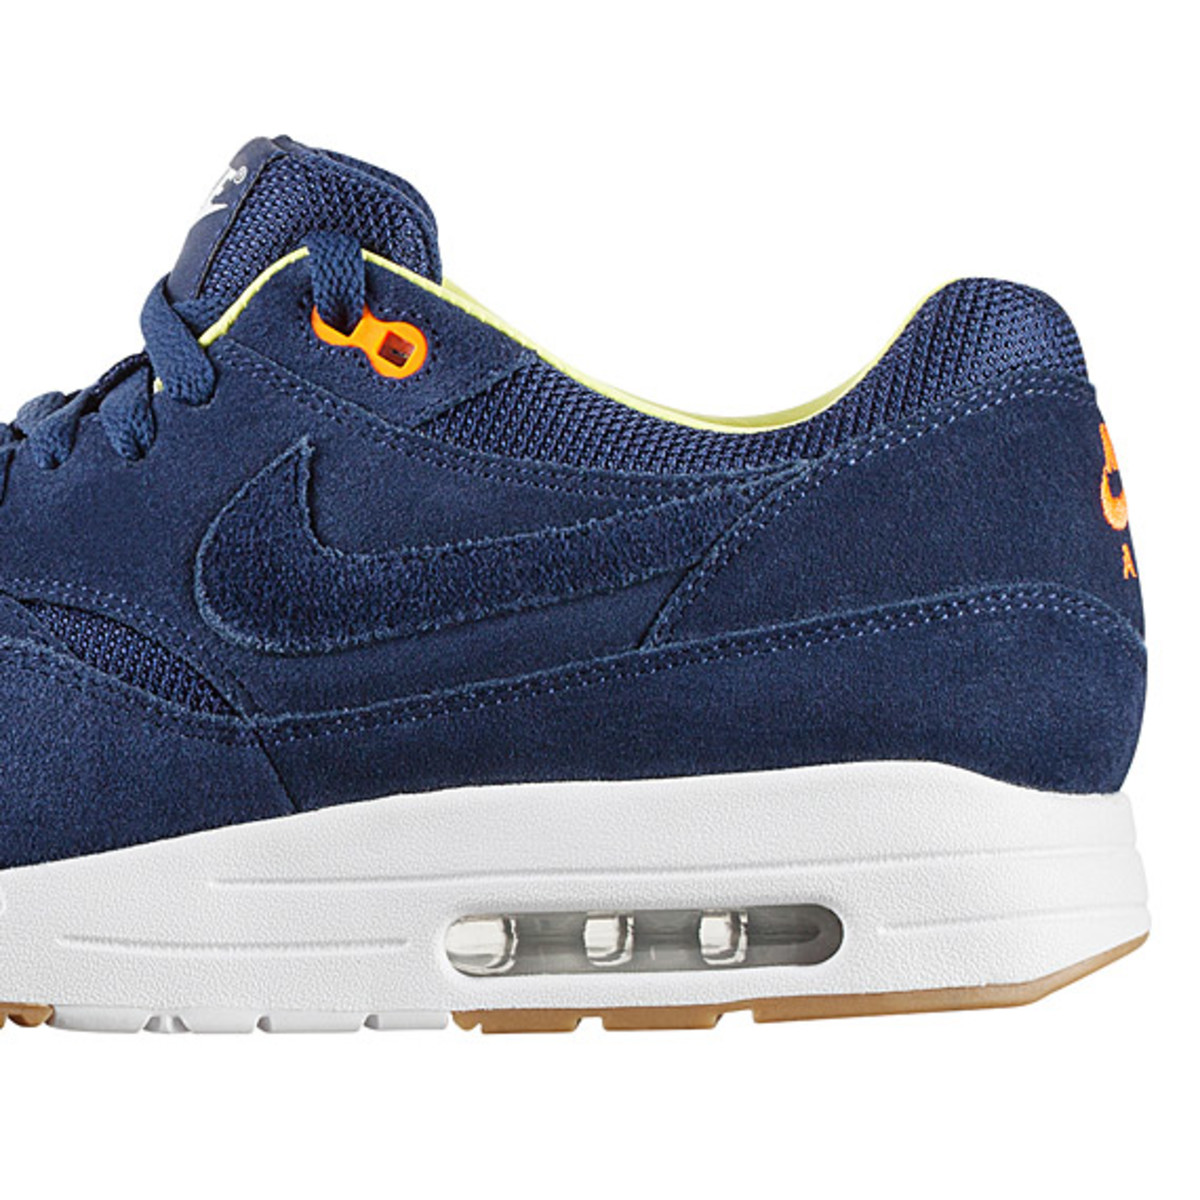 a-p-c-nike-air-max-1-fall-winter-2013-collection-06